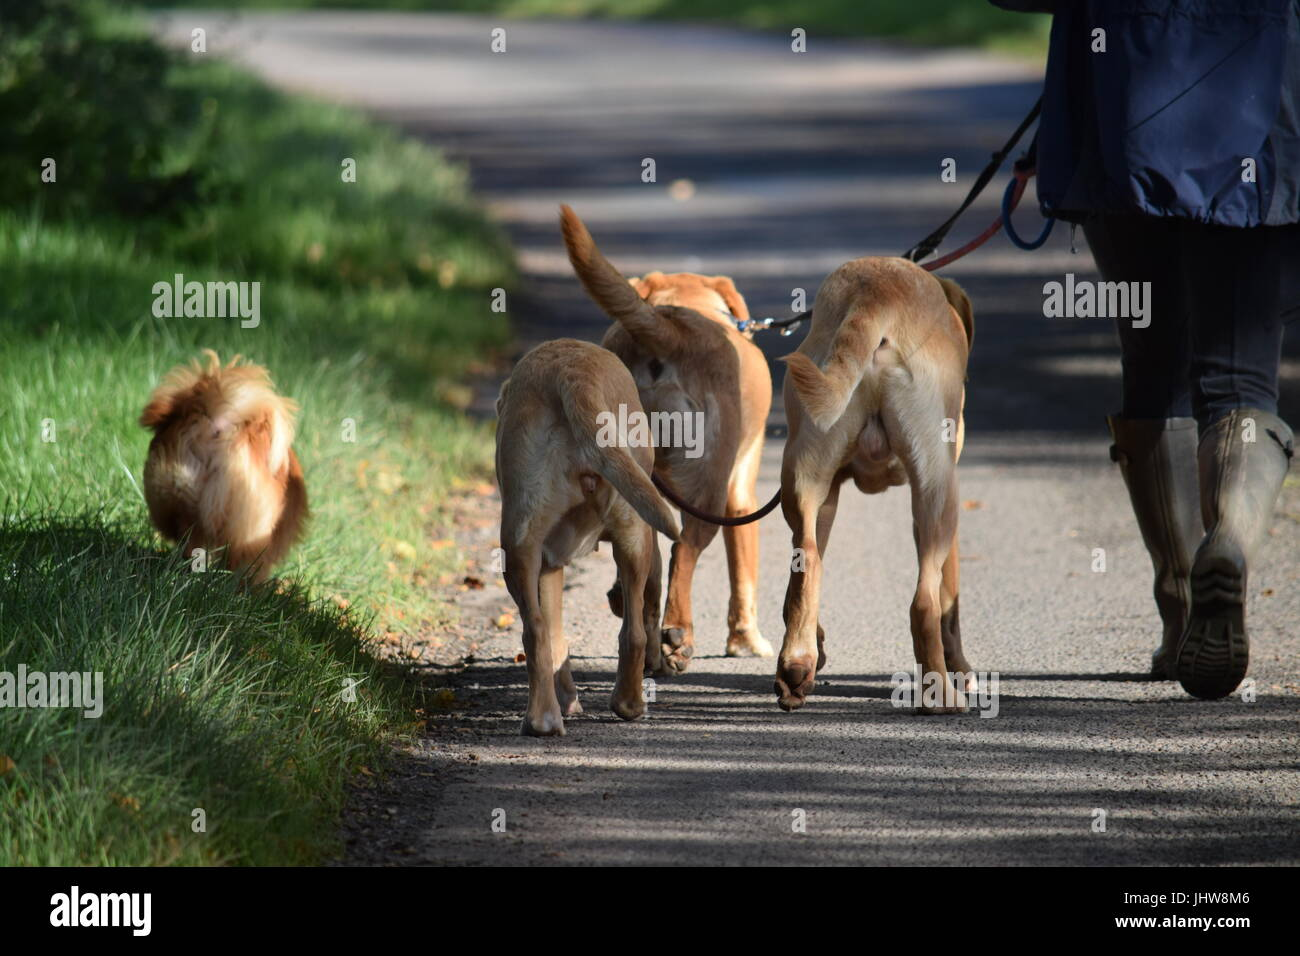 Walking the dog - Stock Image